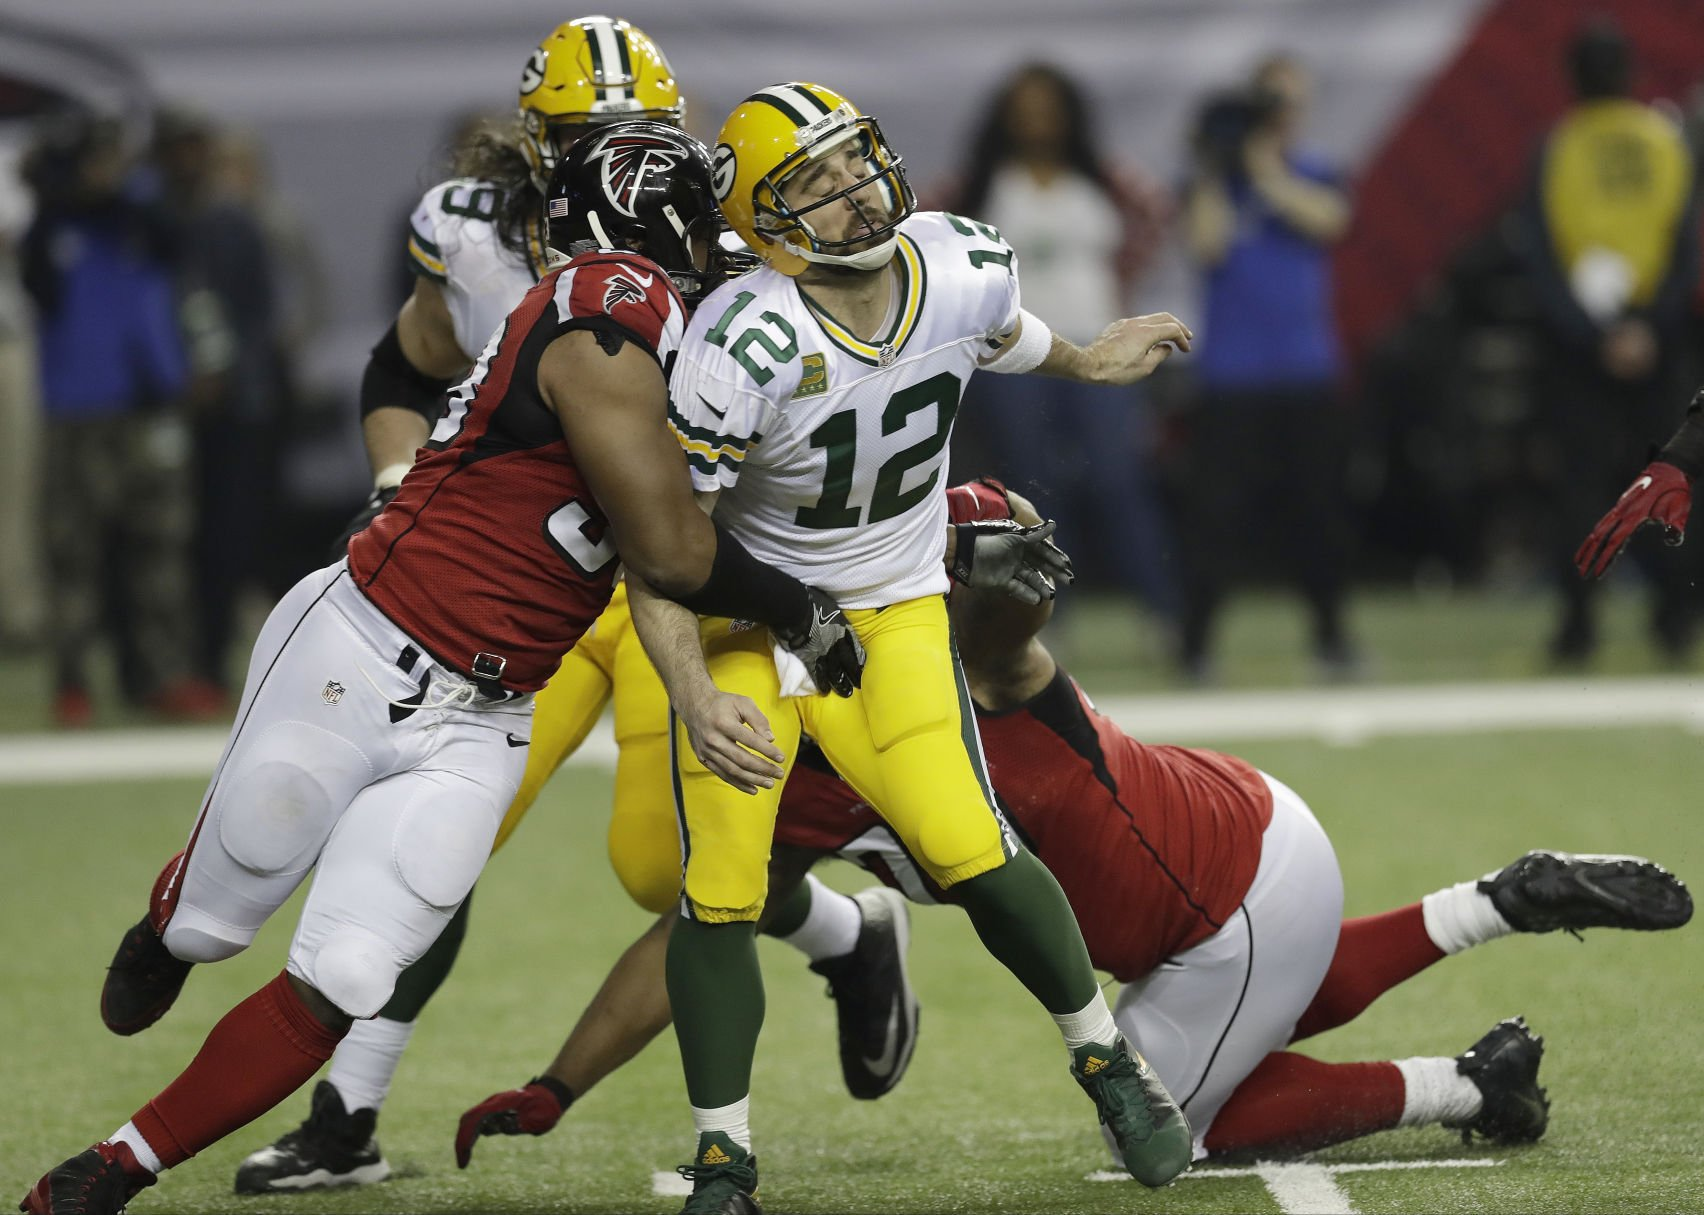 Packers vs. Falcons odds 2017: Atlanta small favorite in NFC championship rematch